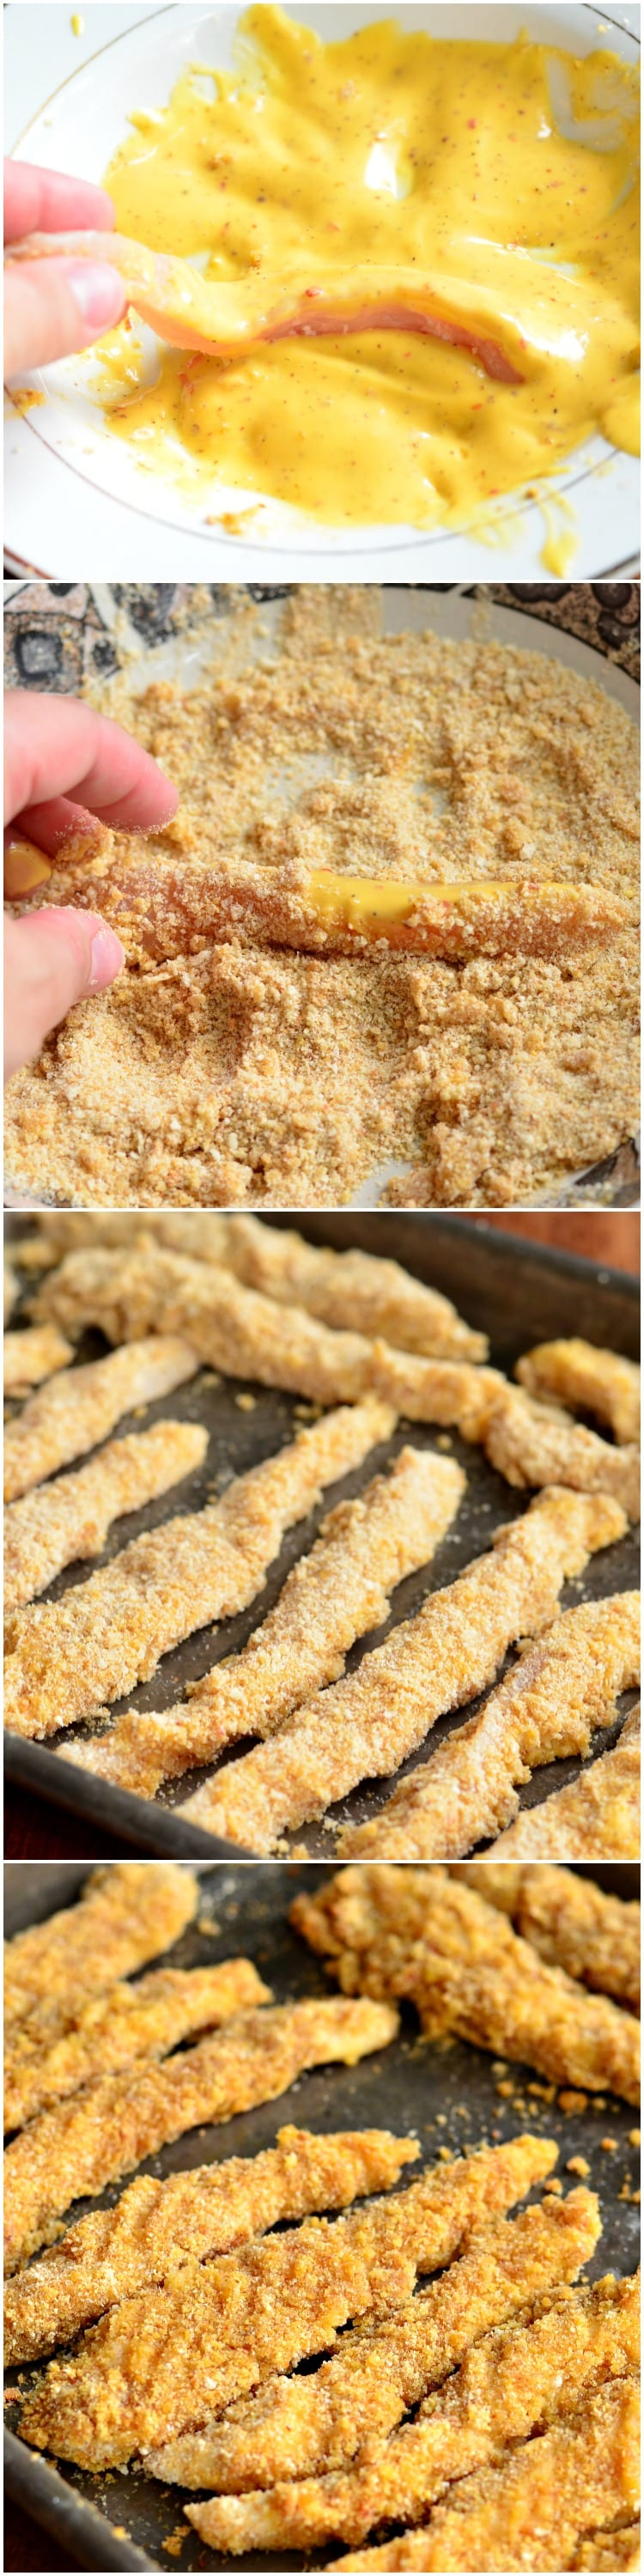 Easy Honey Mustard Baked Chicken Fries collage